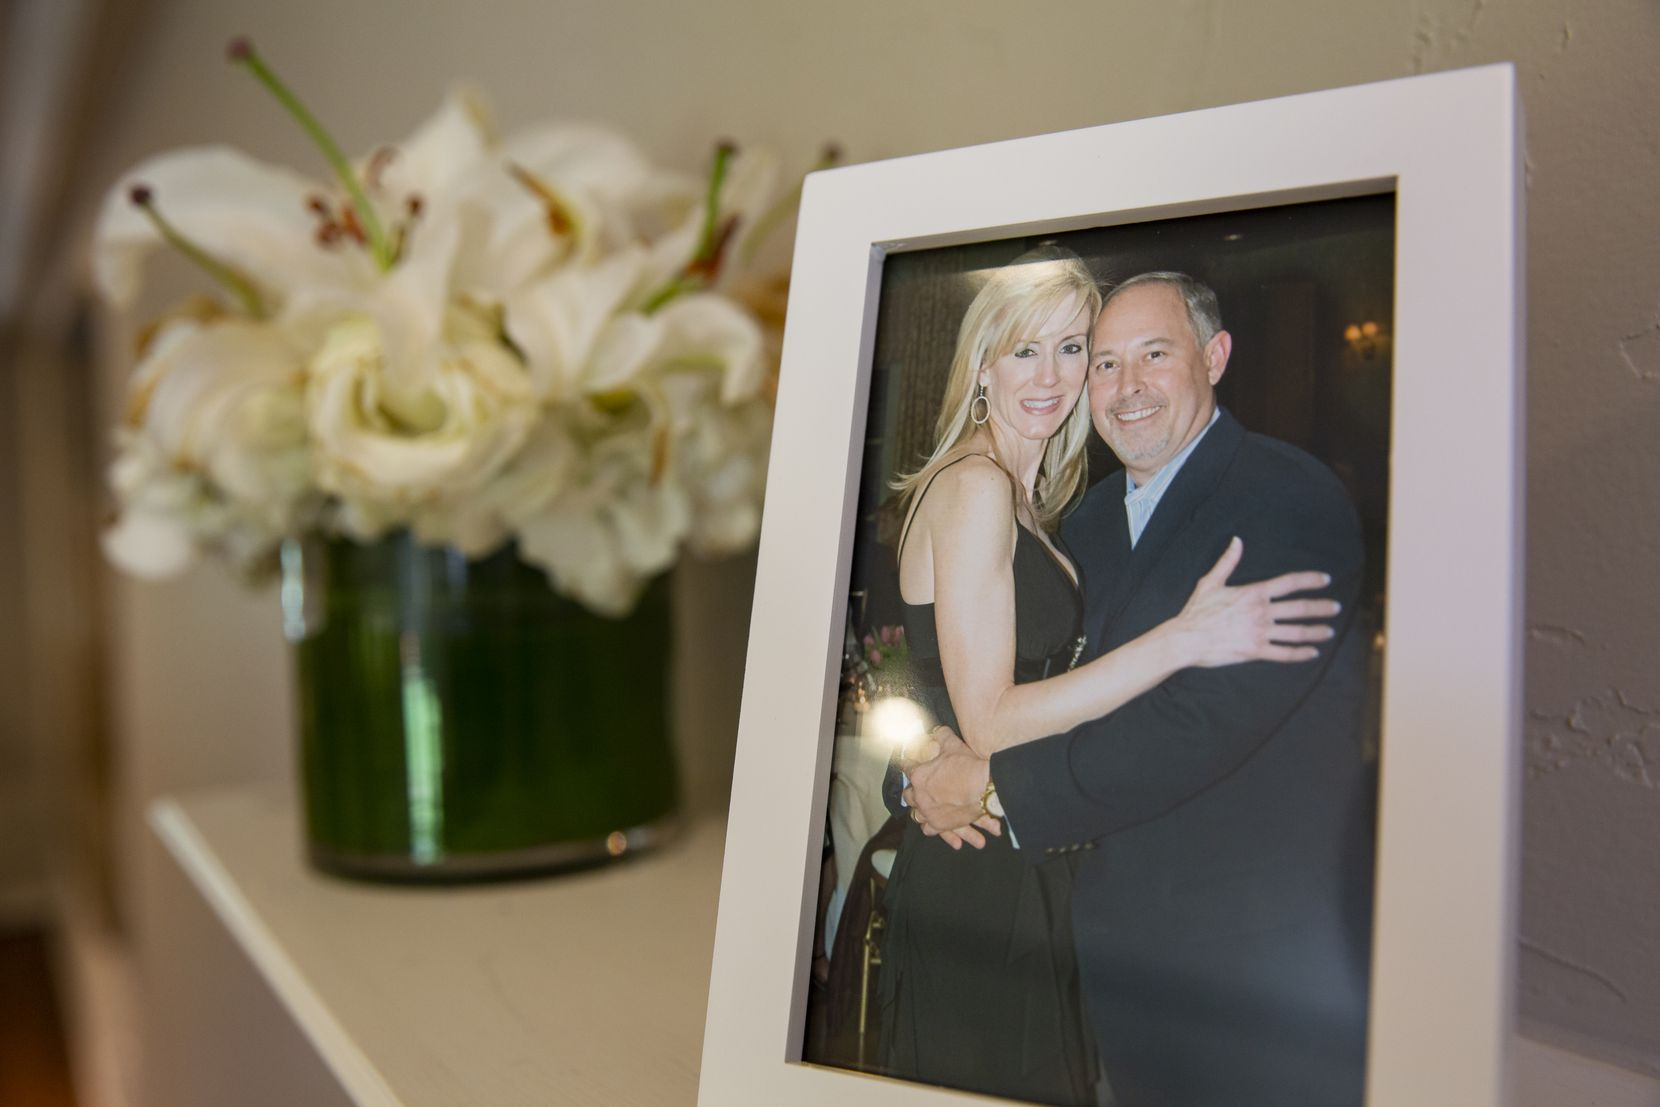 Leslie and Robert Baker are shown in a photo taken during a celebration of his 50th birthday.